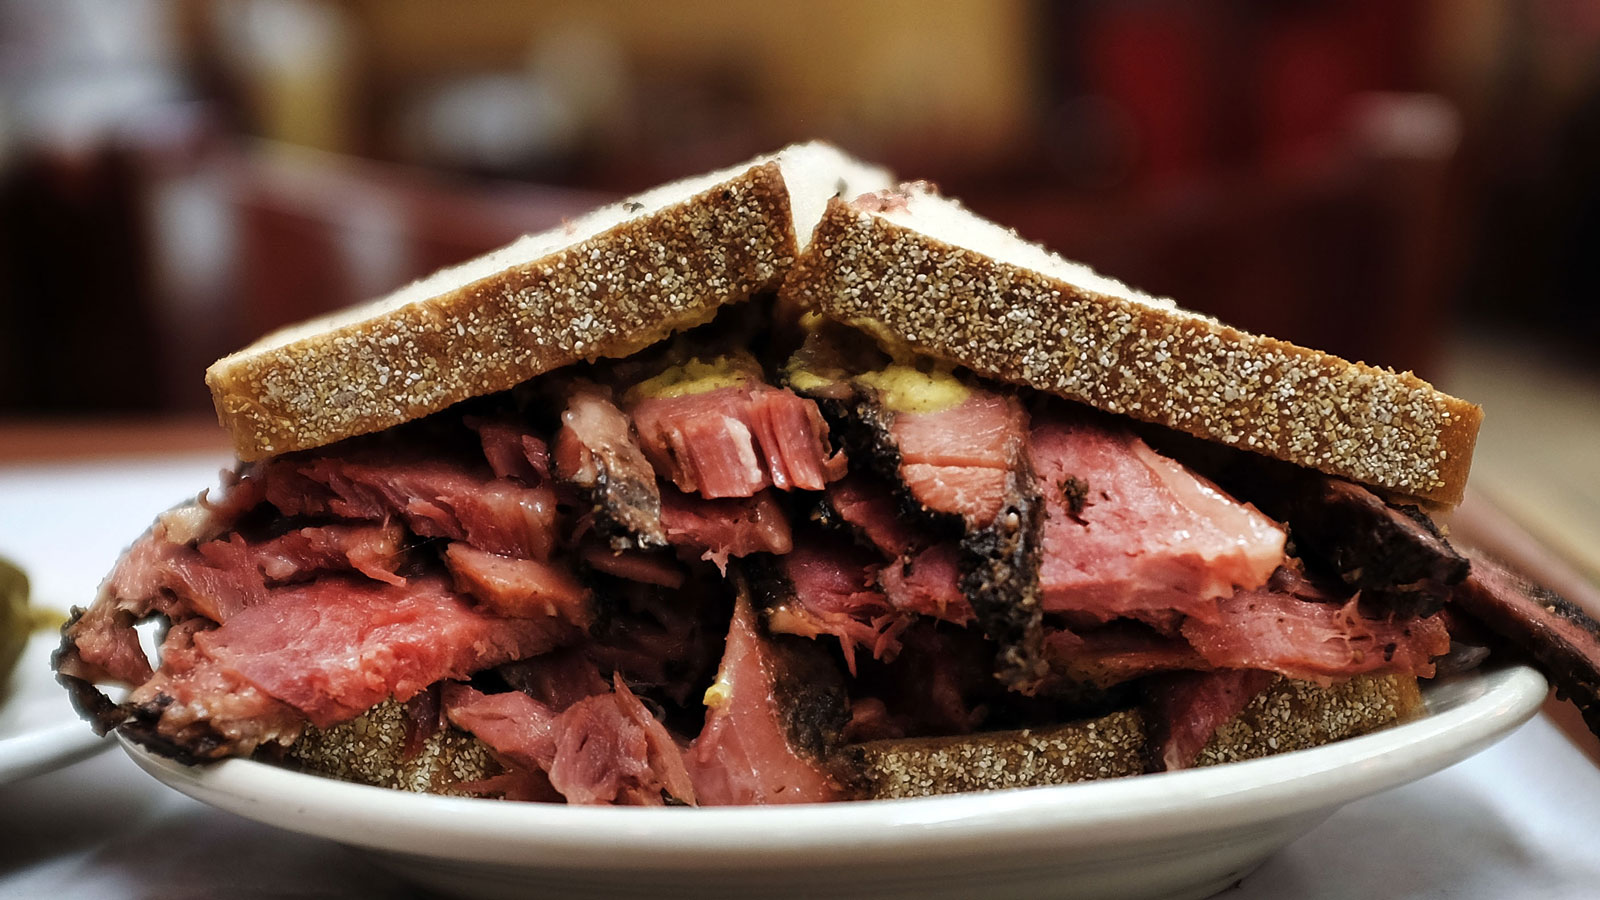 pastrami-differences-between-deli-meats-FT-BLOG0617.jpg